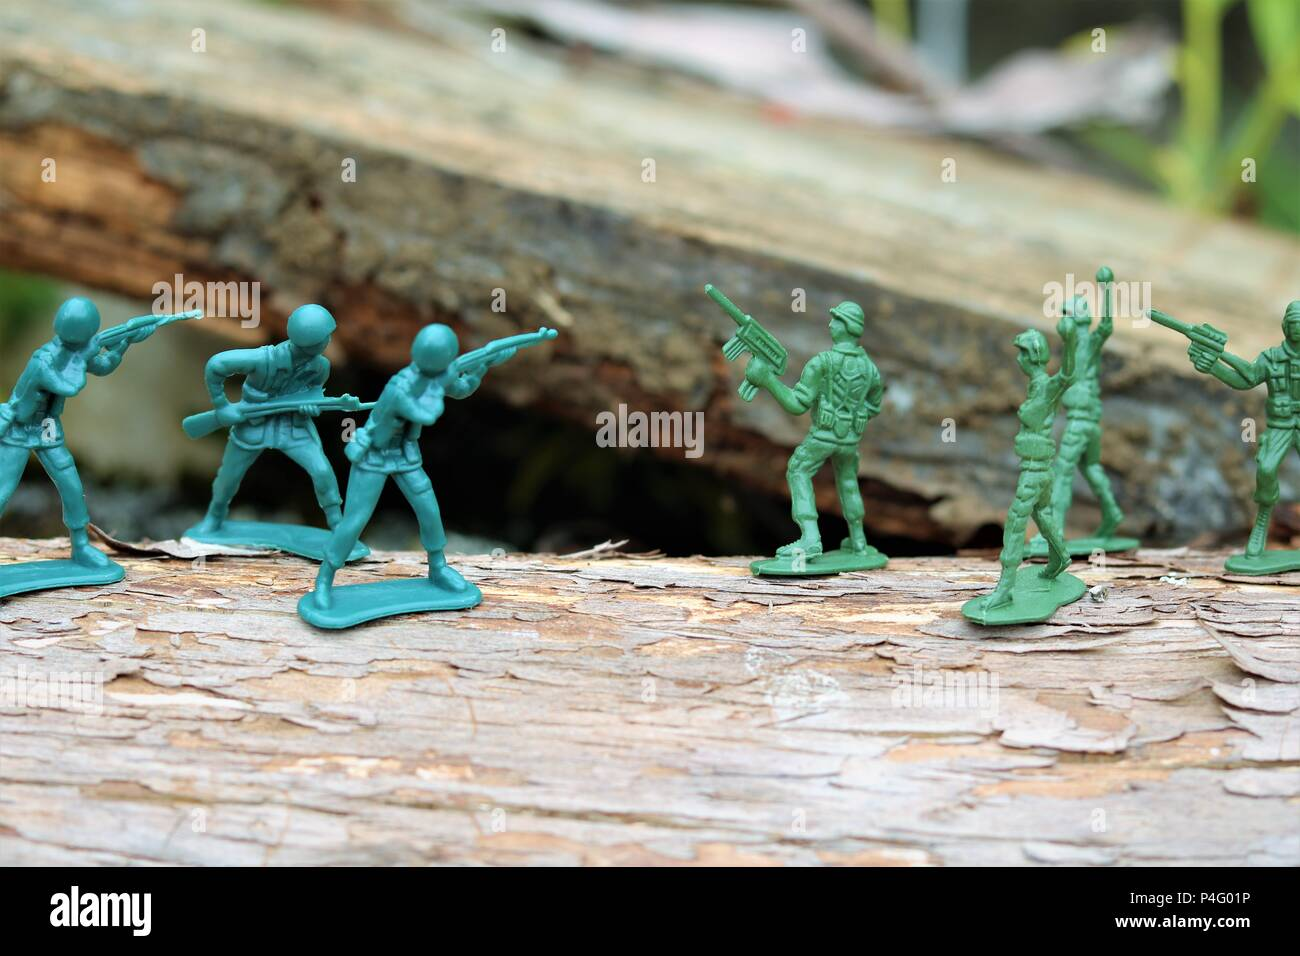 Plastic toy soldiers showing a battle scene - News Concept Stock Photo